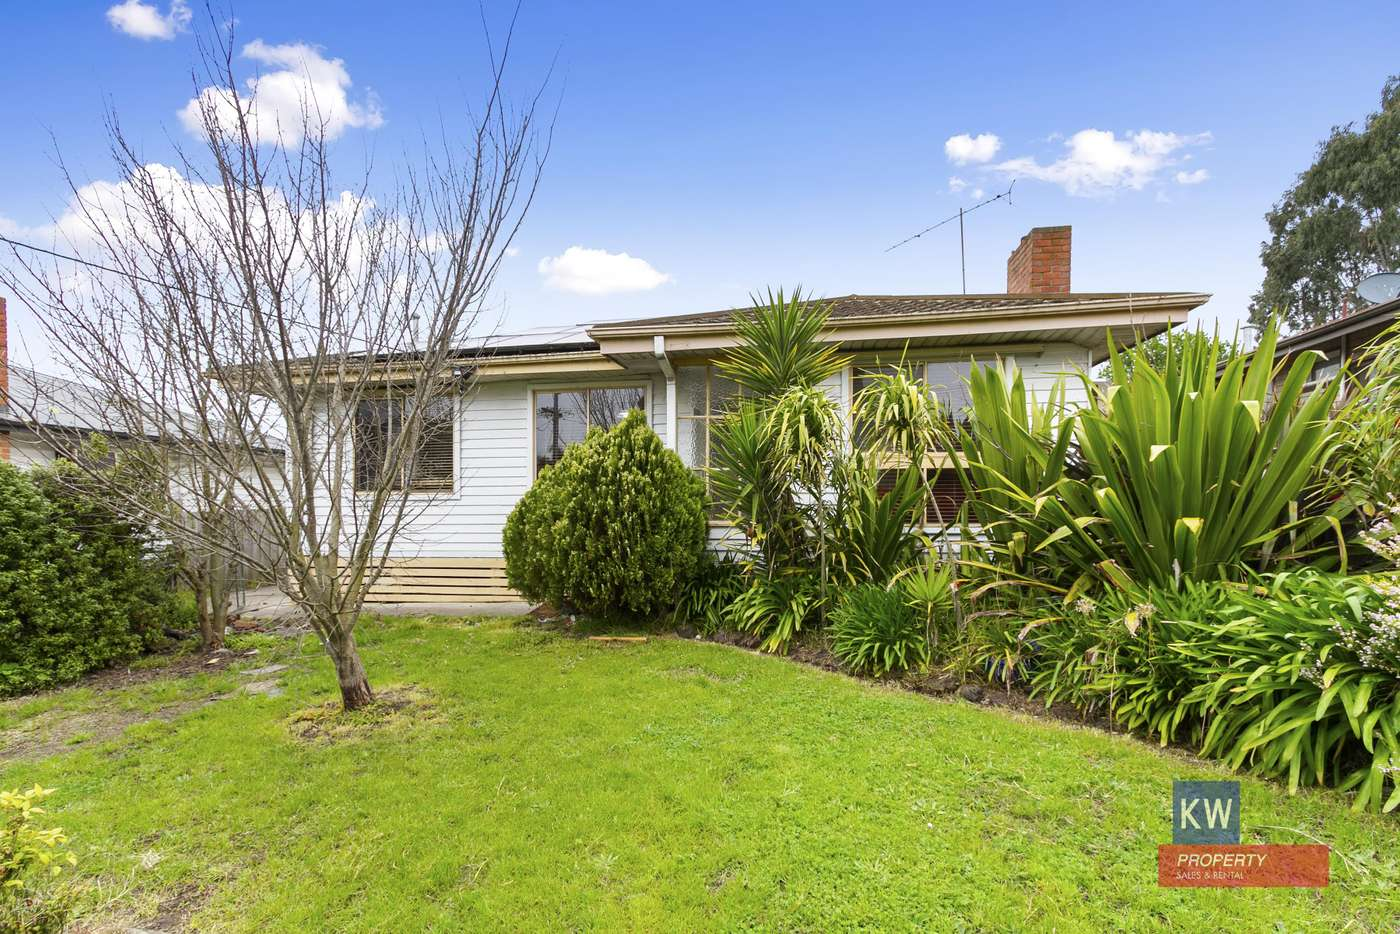 Main view of Homely house listing, 30 Churchill Rd, Morwell VIC 3840